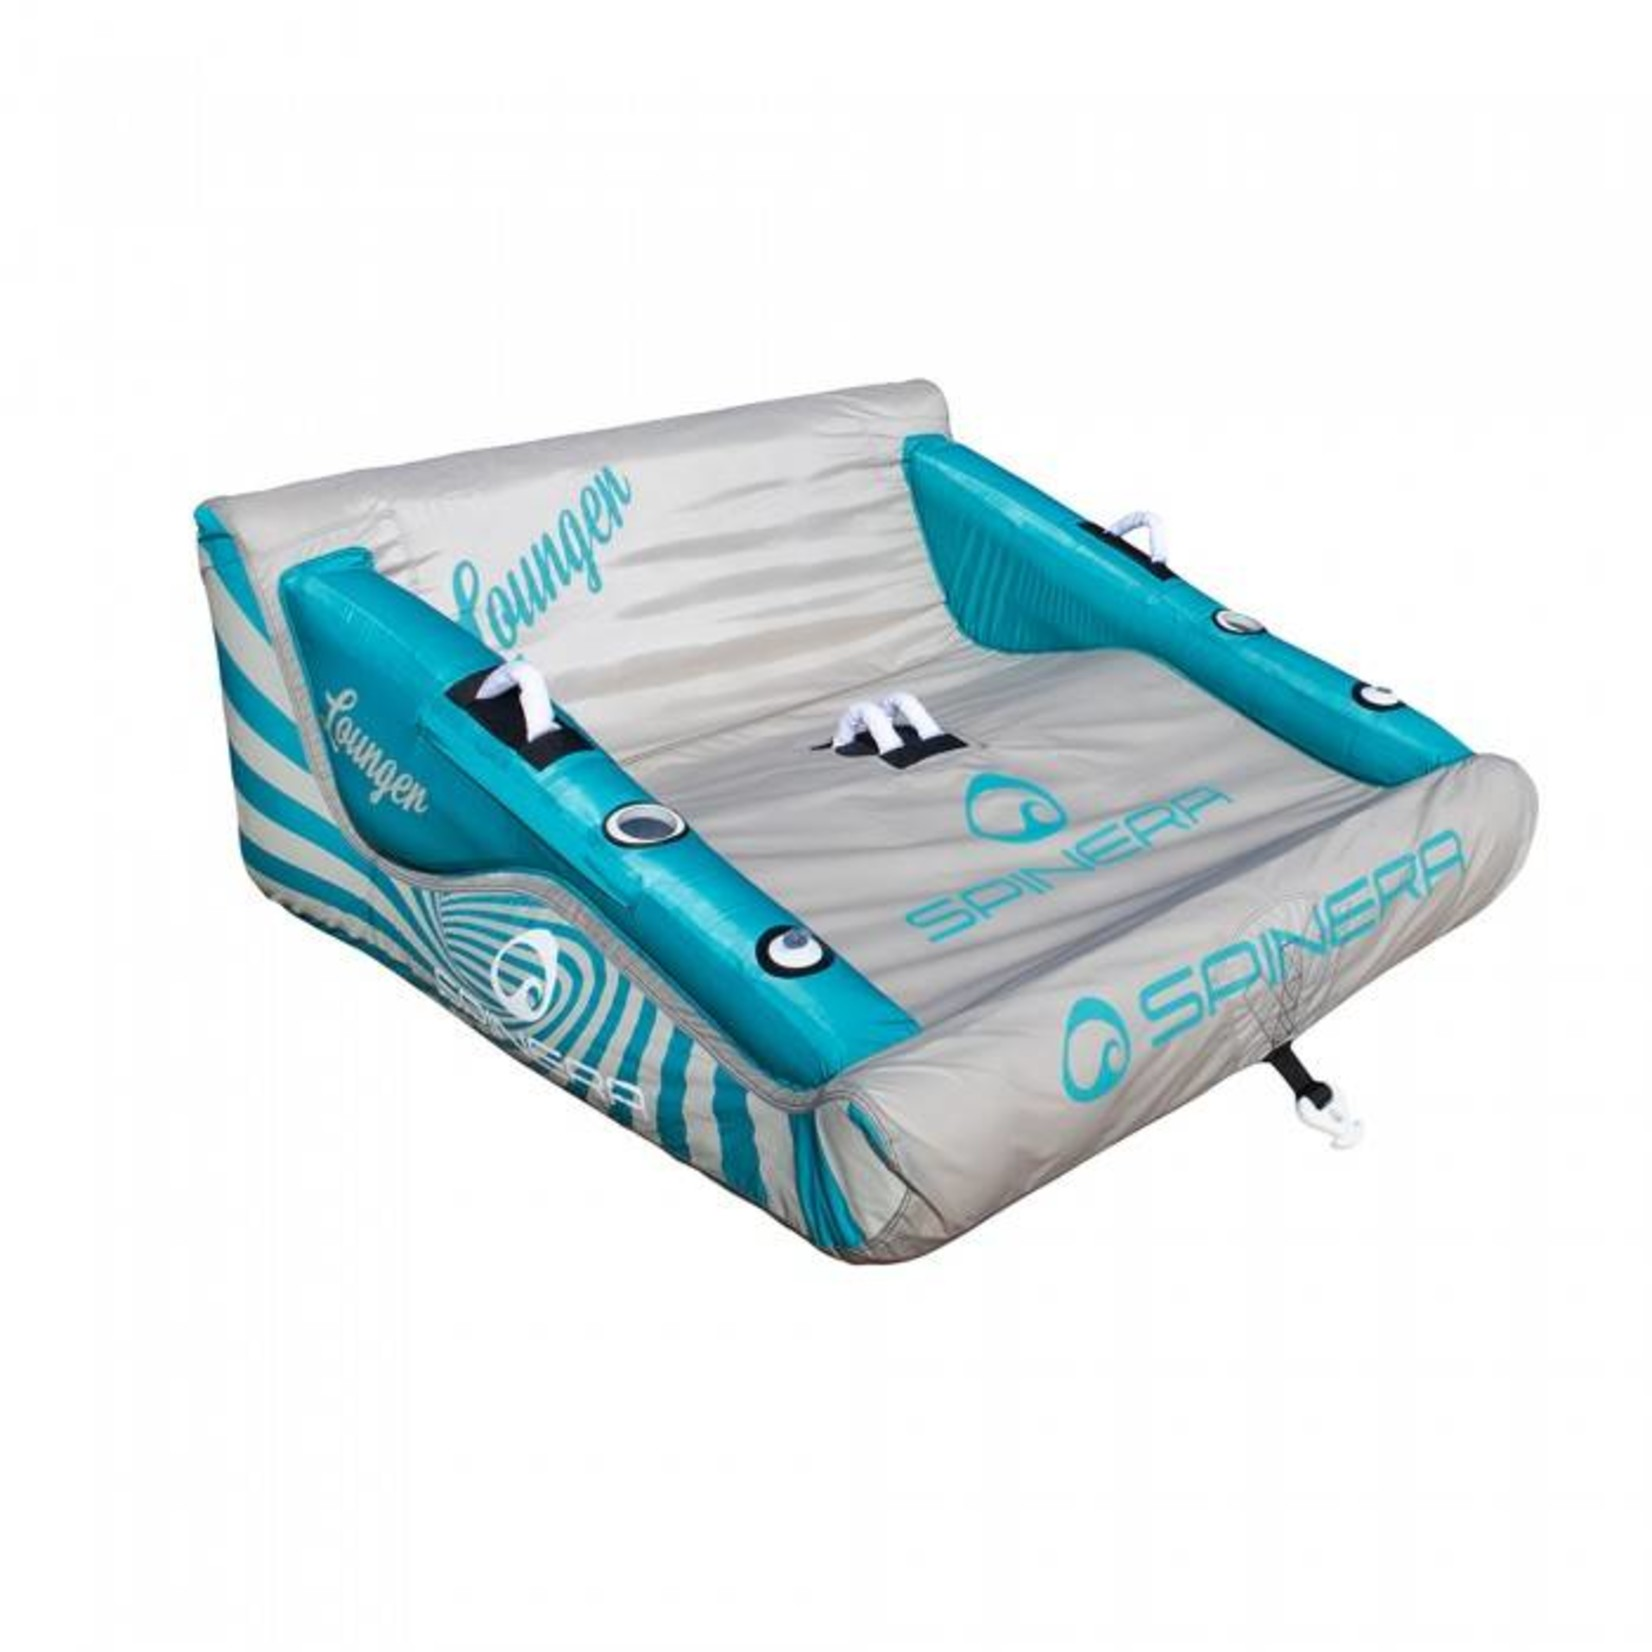 Lounger - Tweepersoons lounger